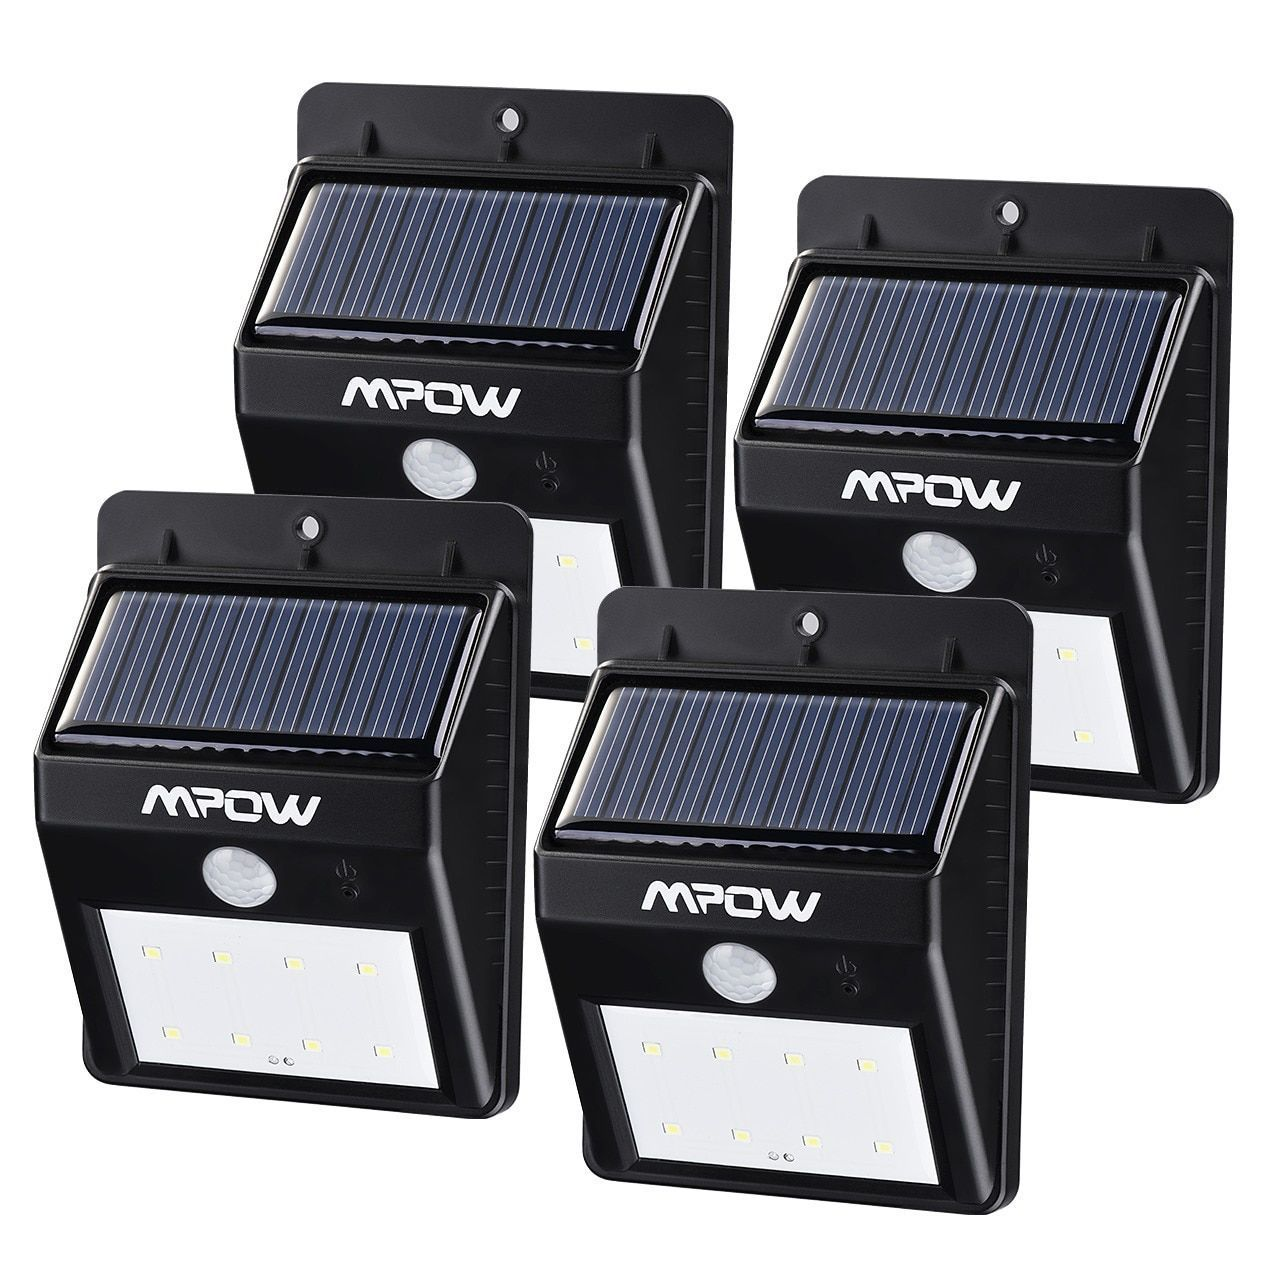 Mpow solar powered wireless security motion sensor light outdoor 8 mpow solar powered wireless security motion sensor light outdoor 8 led bulb lamp aloadofball Image collections